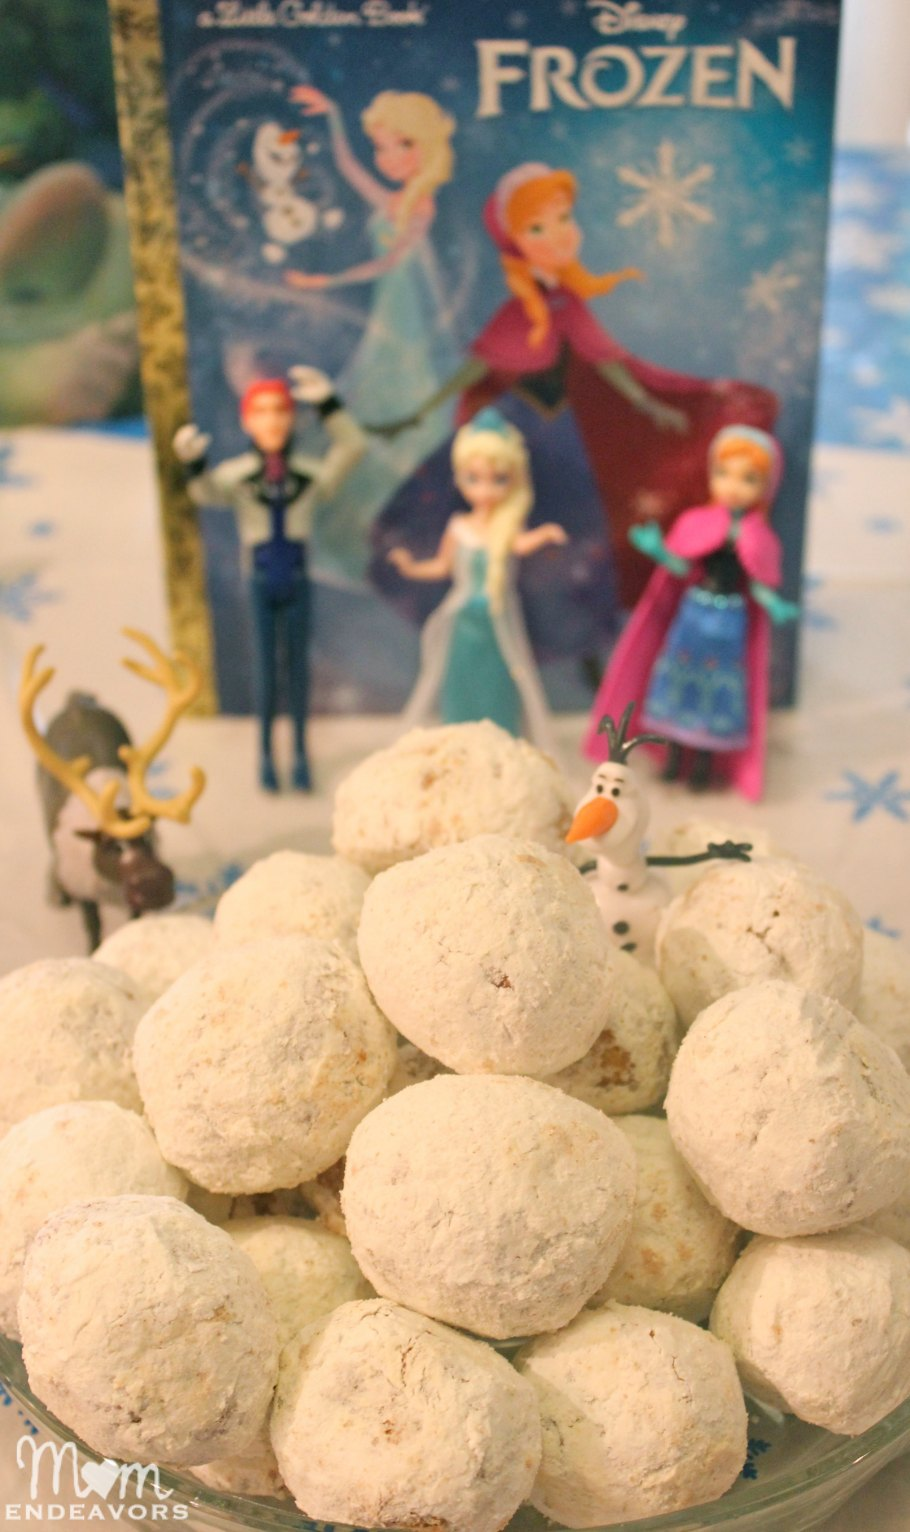 Disney FROZEN Themed Breakfast & Mini Party Ideas #FrozenFun